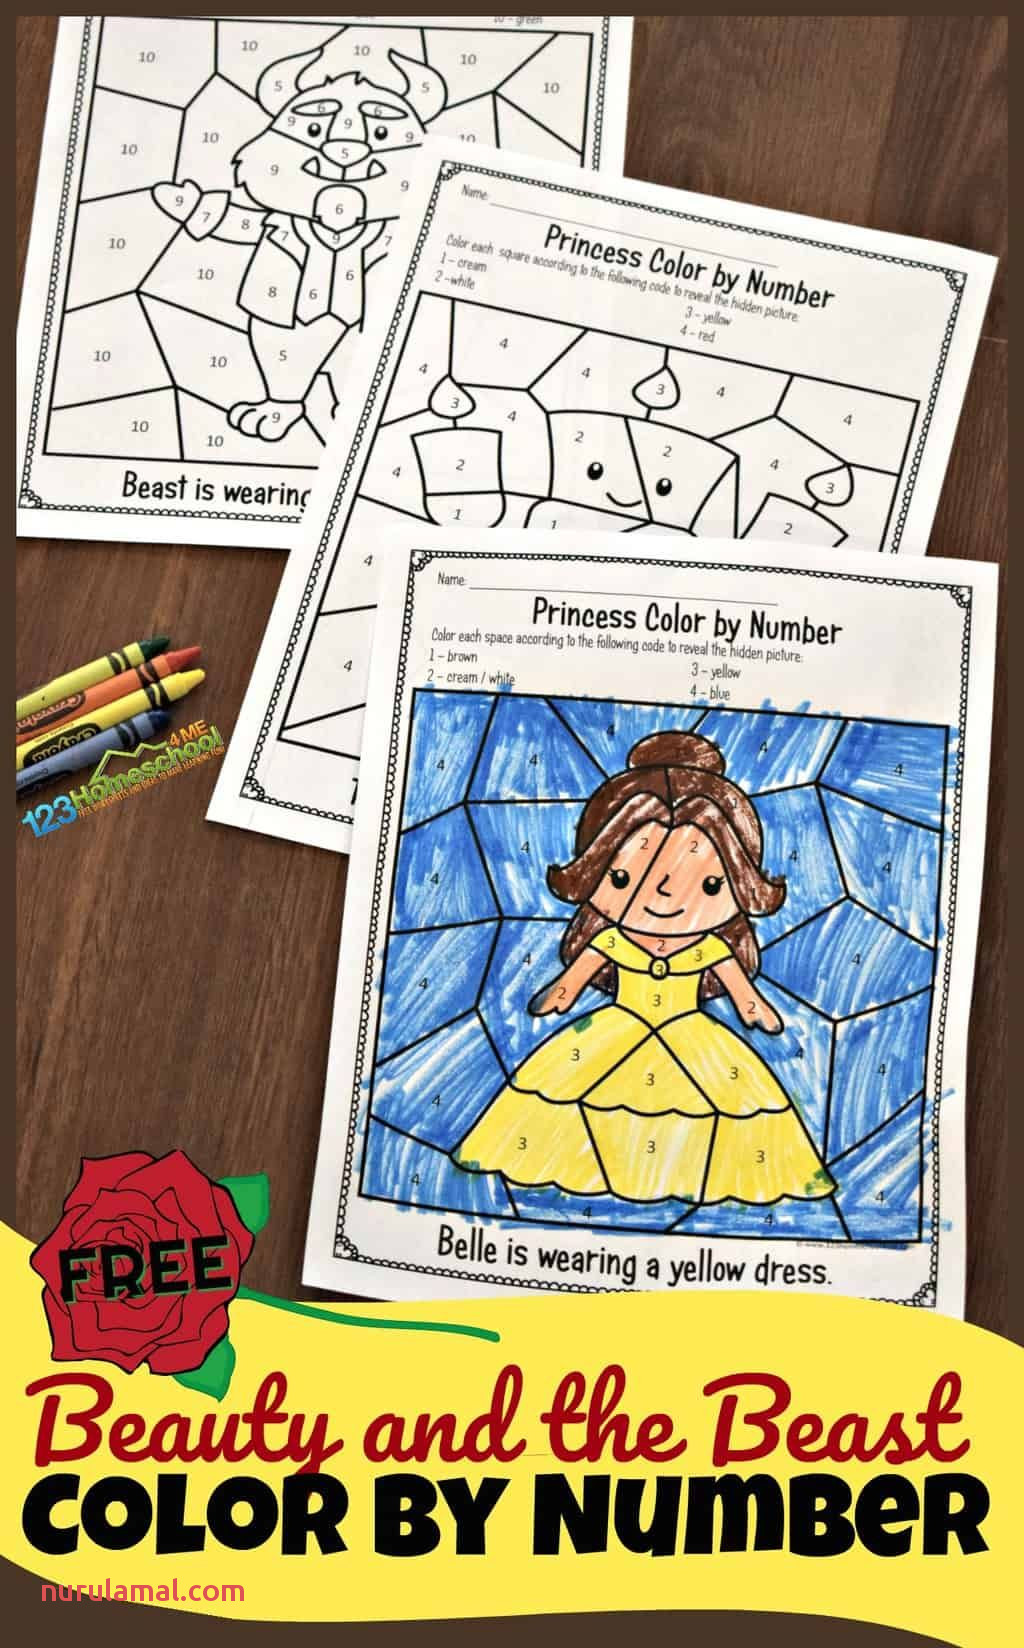 Free Beauty and the Beast Color by Number Worksheets